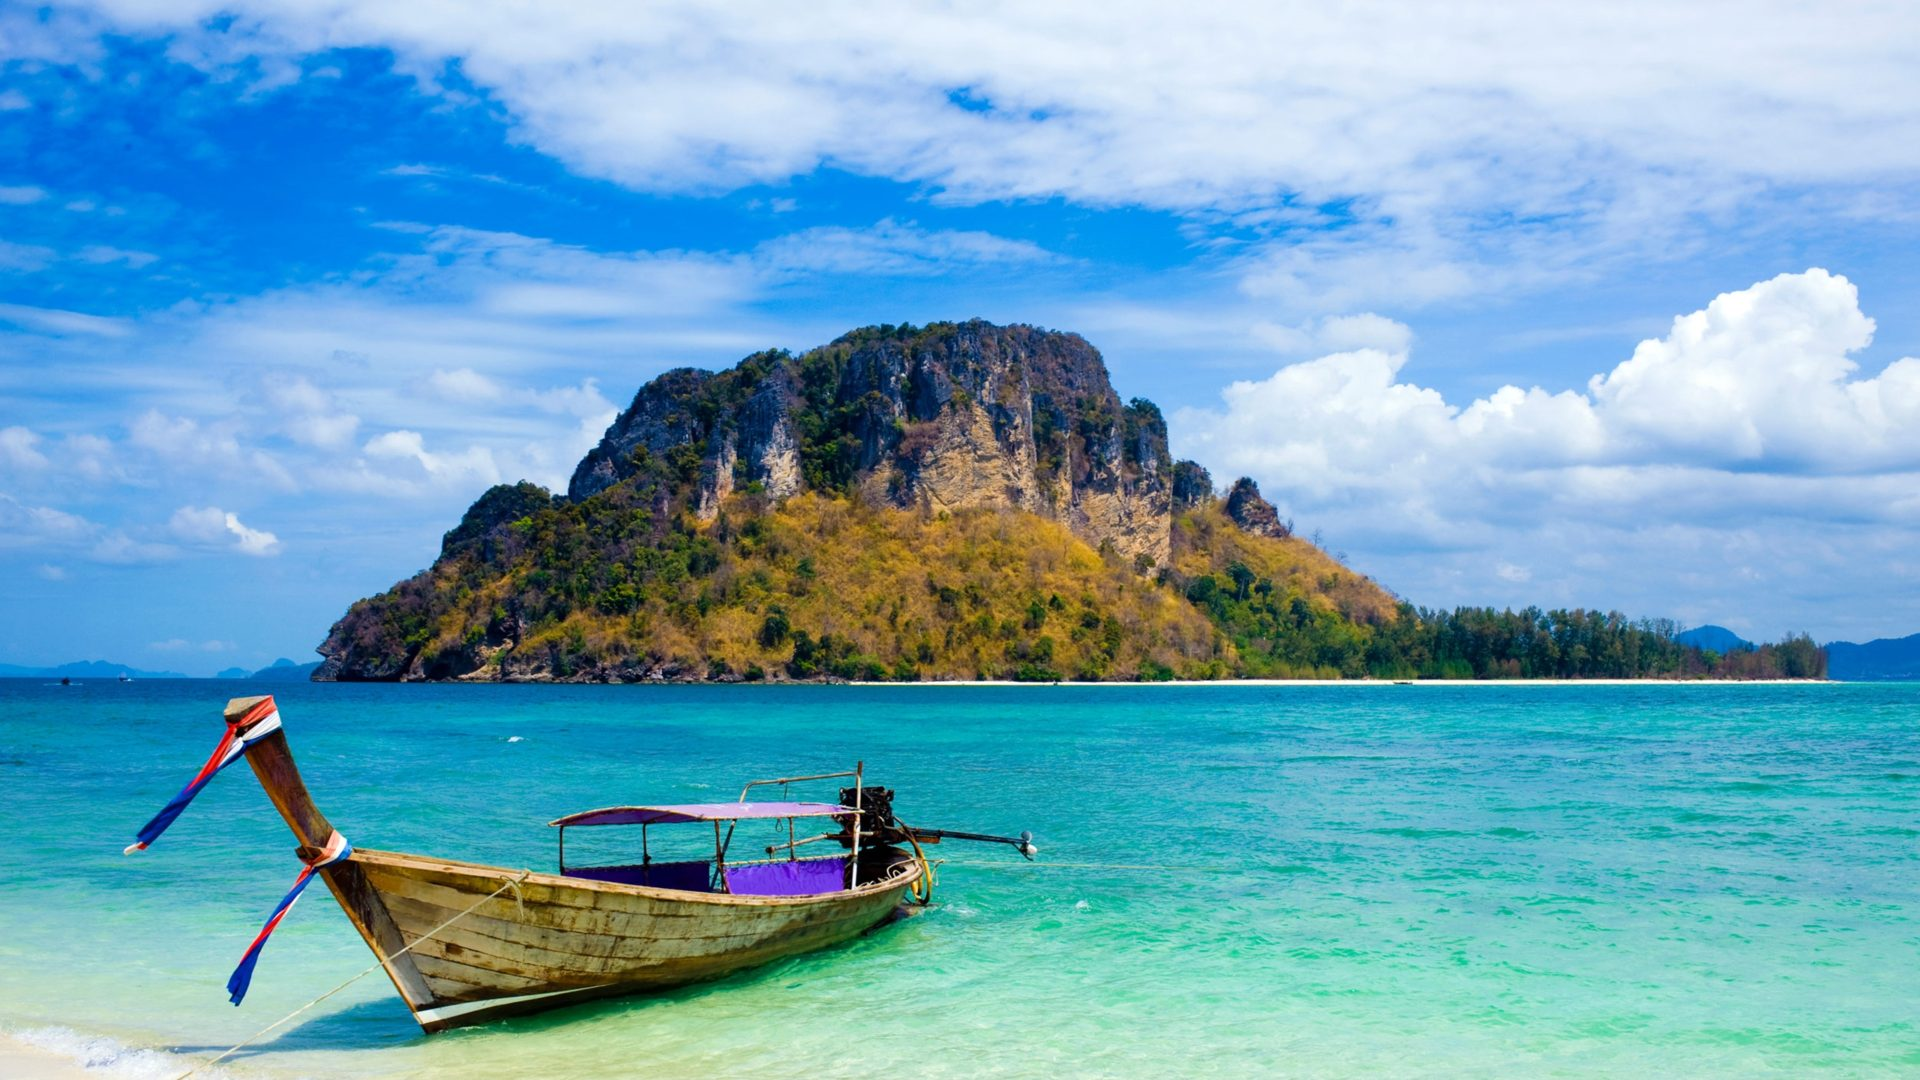 Lock Screen Wallpaper Hd Thailand Island Beautiful Scenery Hd Wallpaper 7448